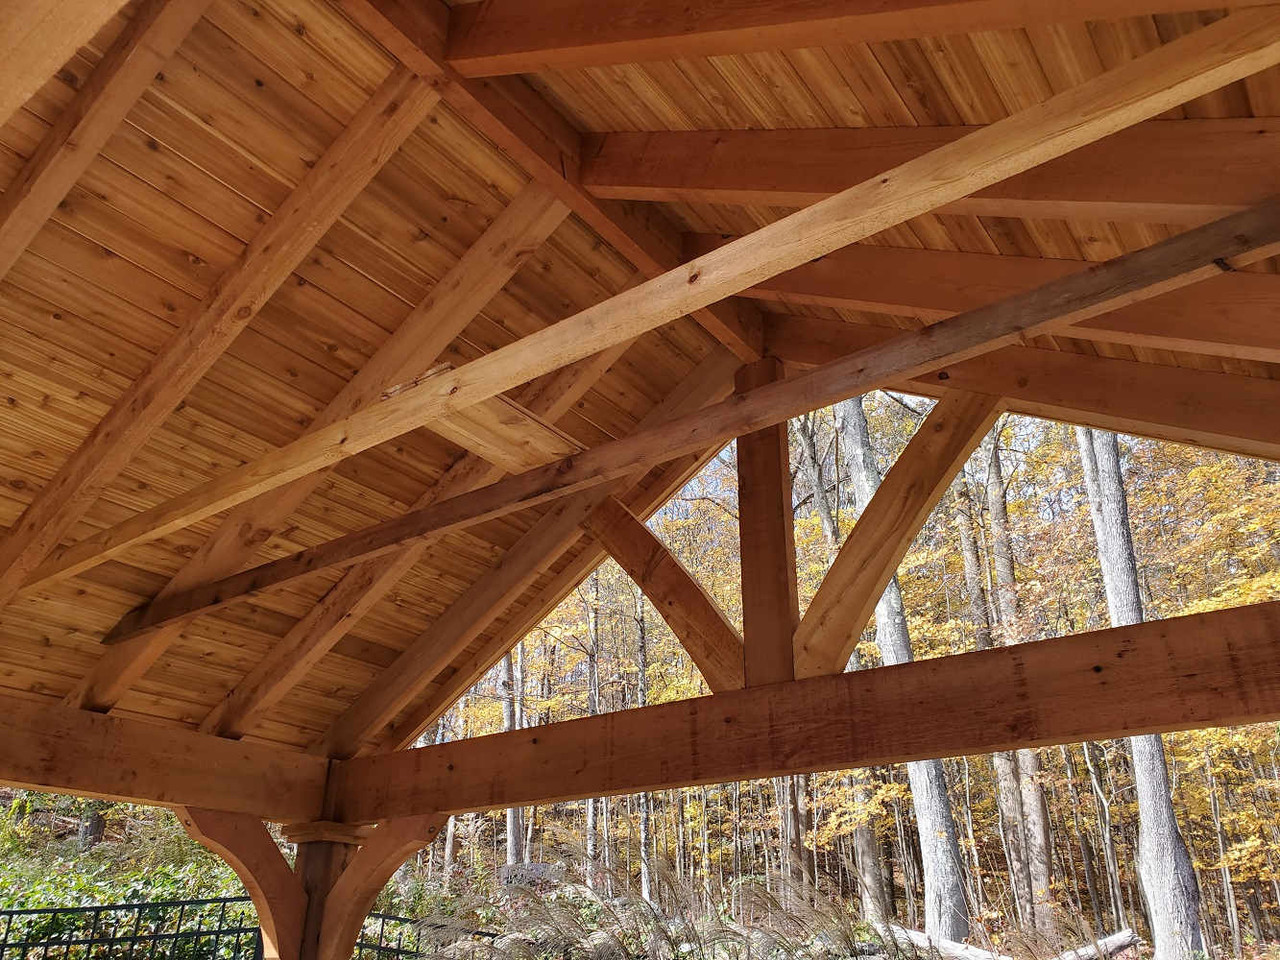 Maple-Stained Underside of Open Gable Grand Cedar Pavilion, New Milford, CT